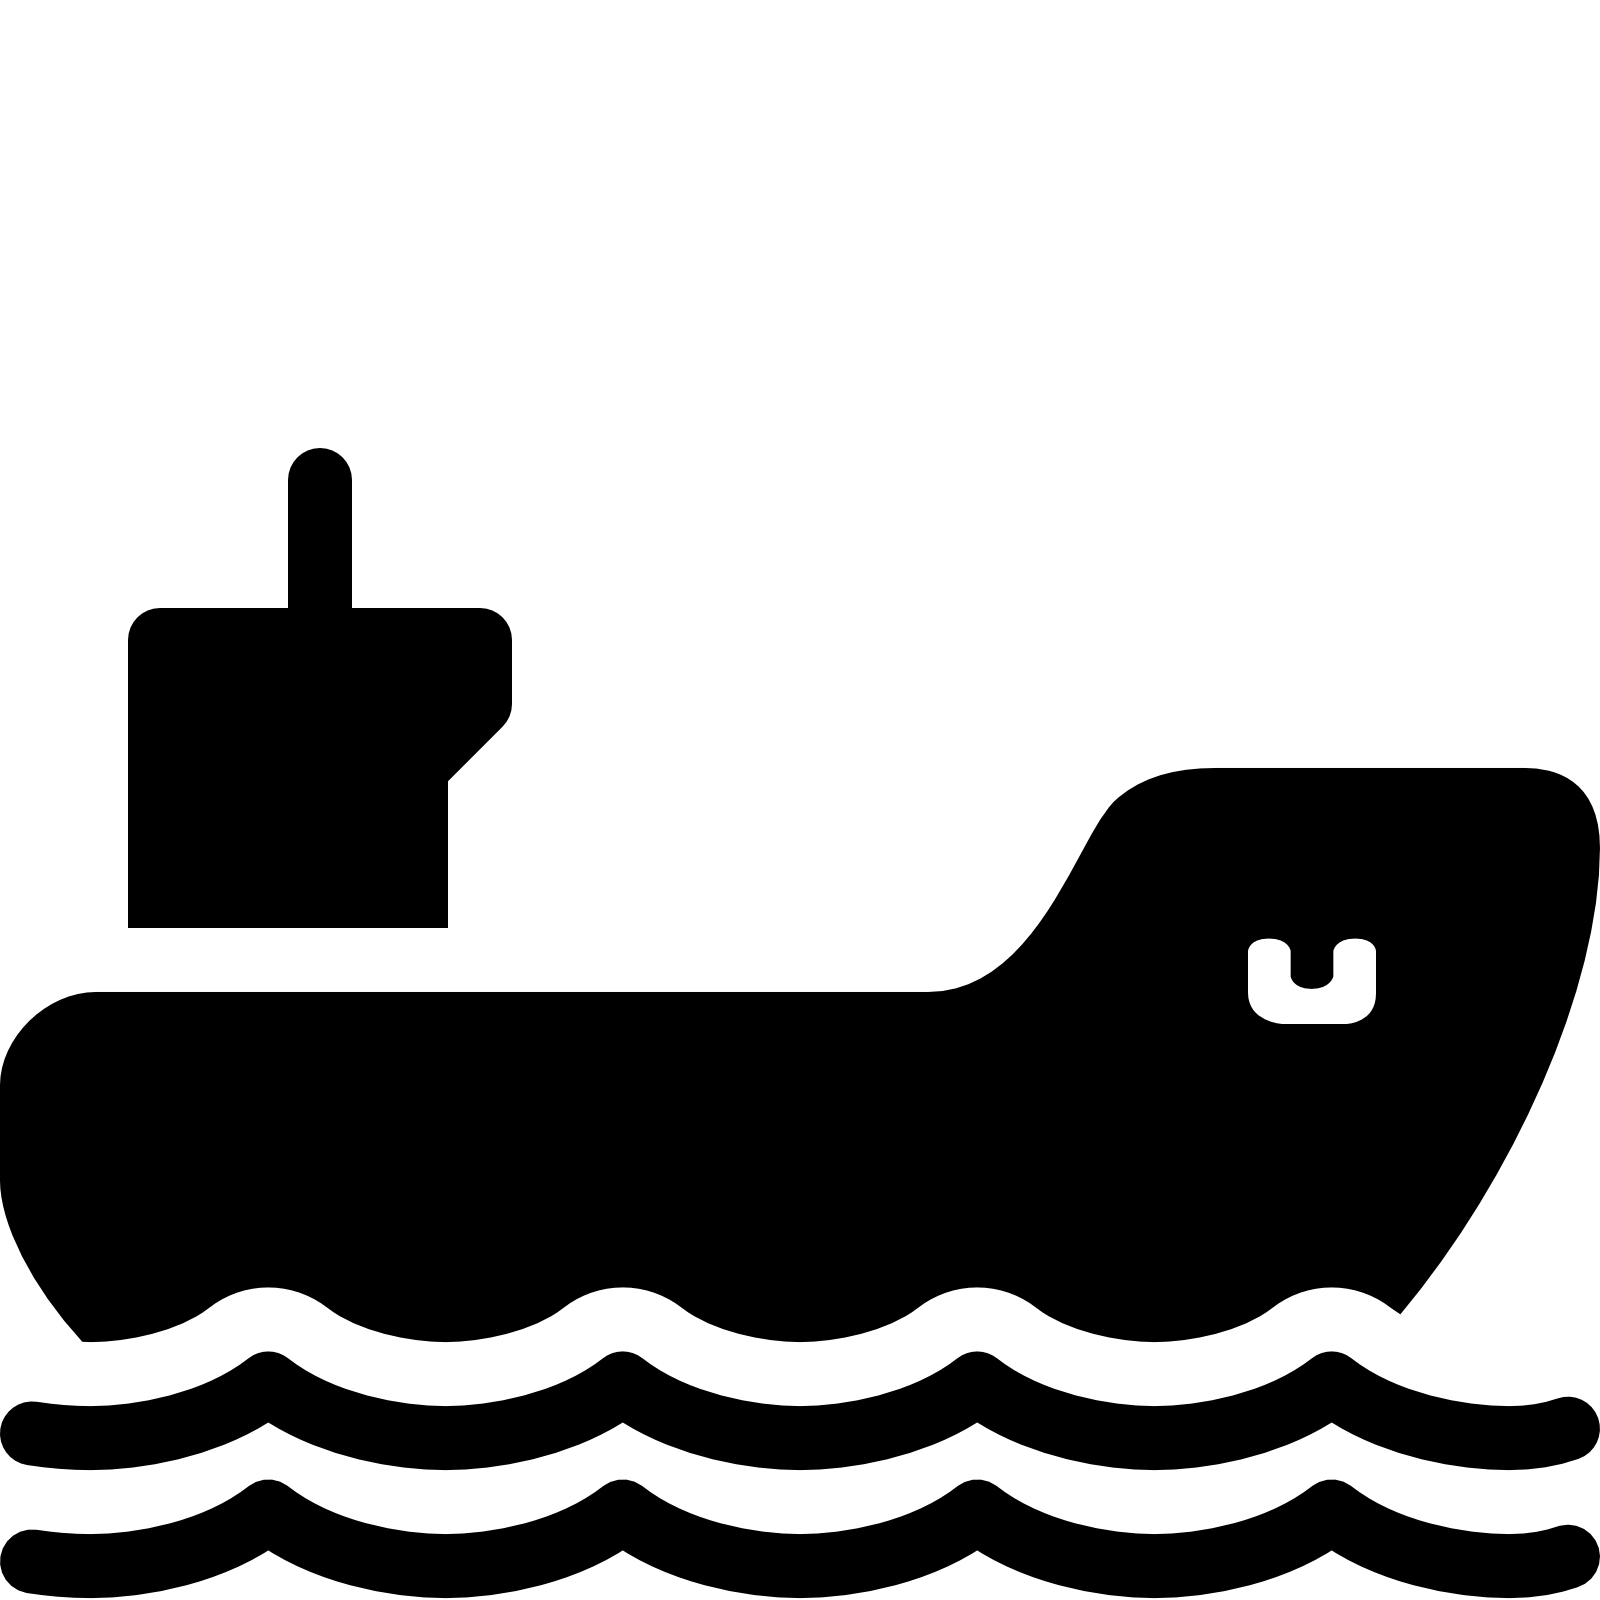 Cruise clipart cargo ship Icon Cruise Ship for Download